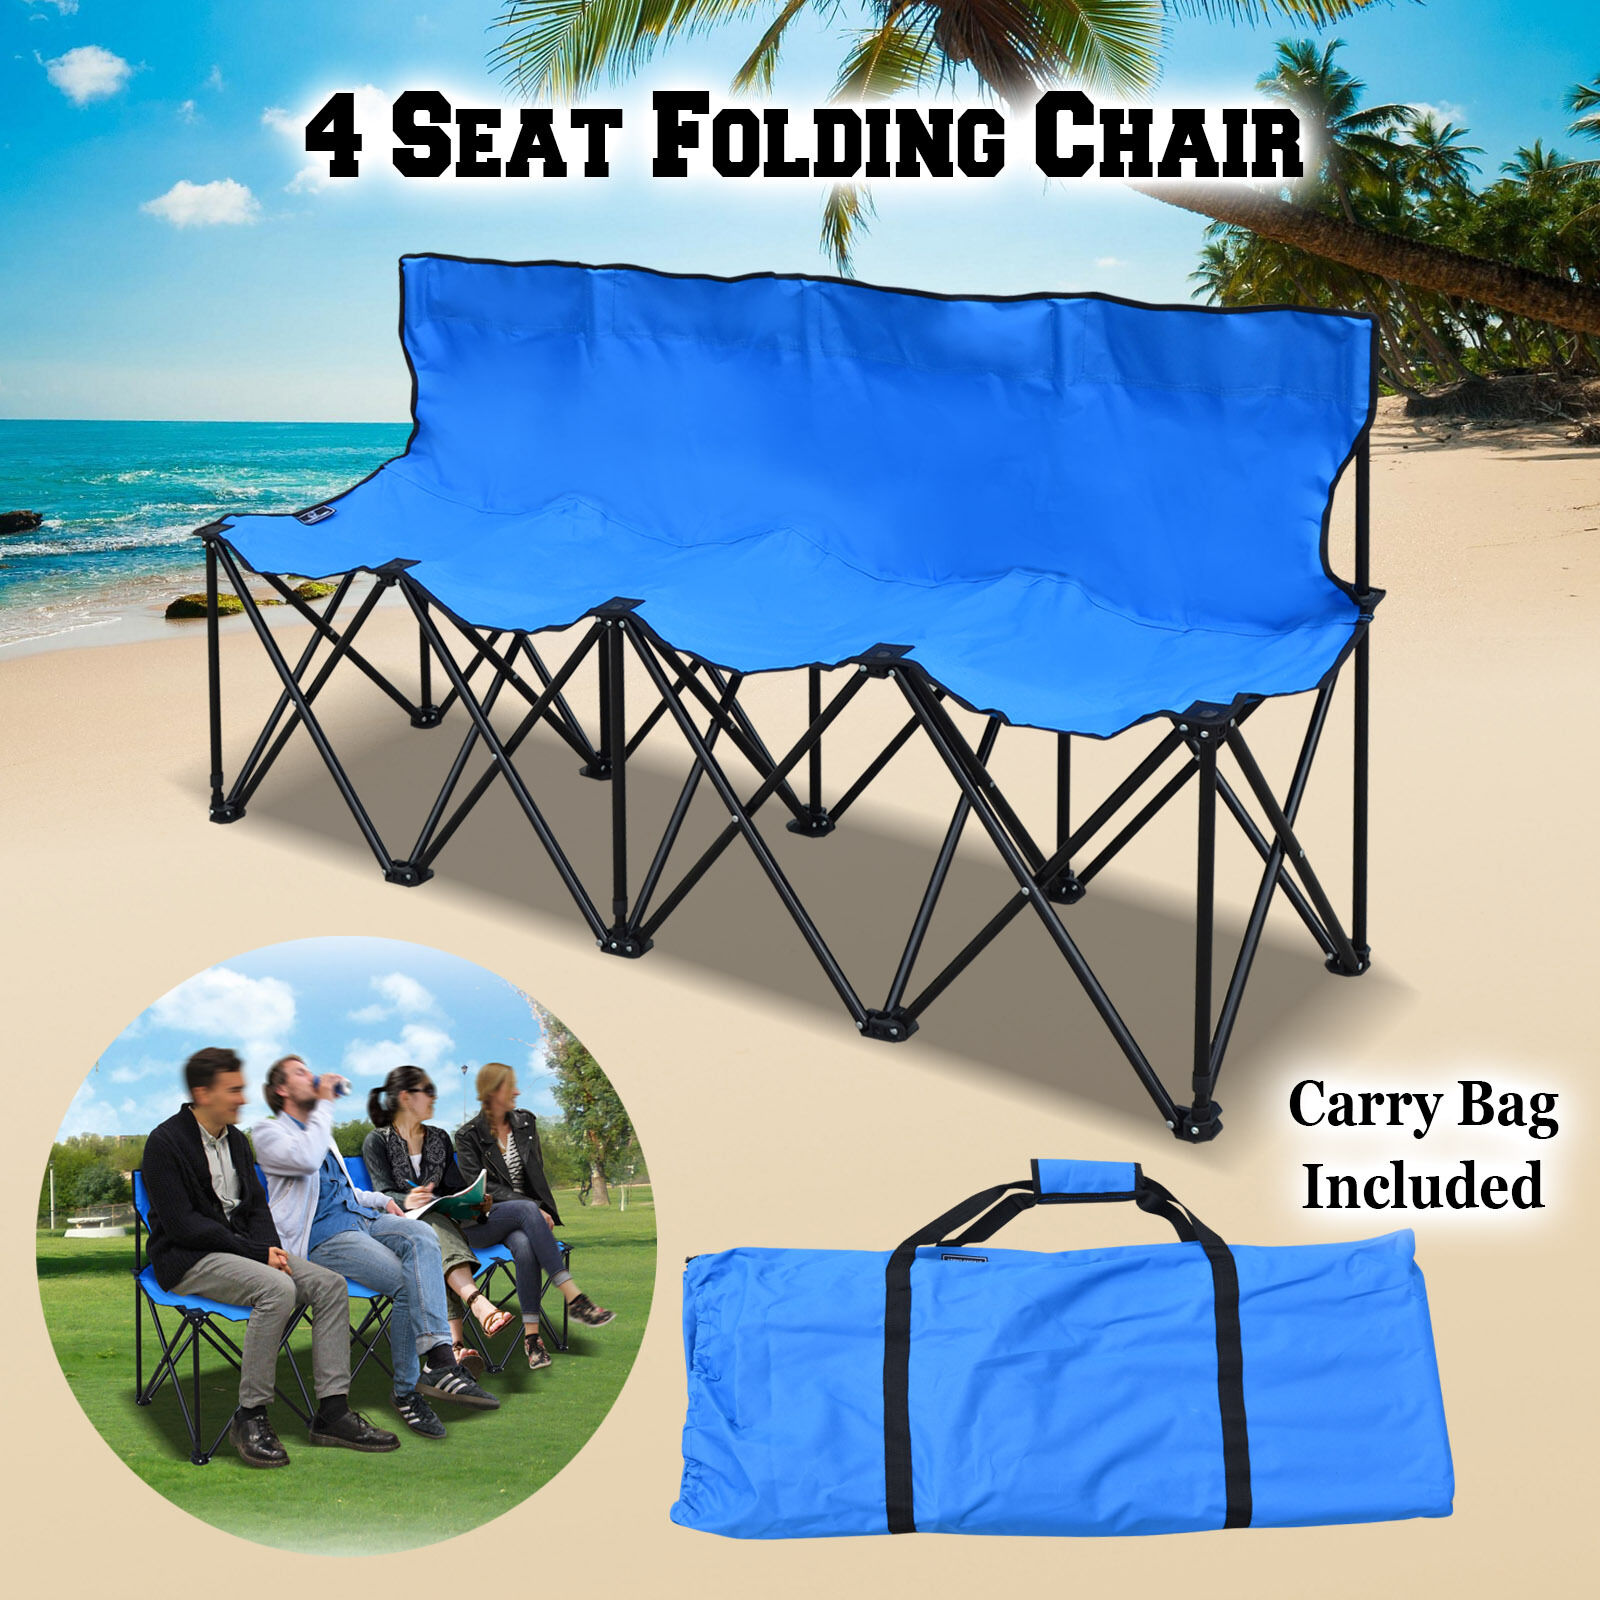 New Folding Portable  4 Seater Team Sports Sideline Bench Outdoor w Carrybag  free and fast delivery available